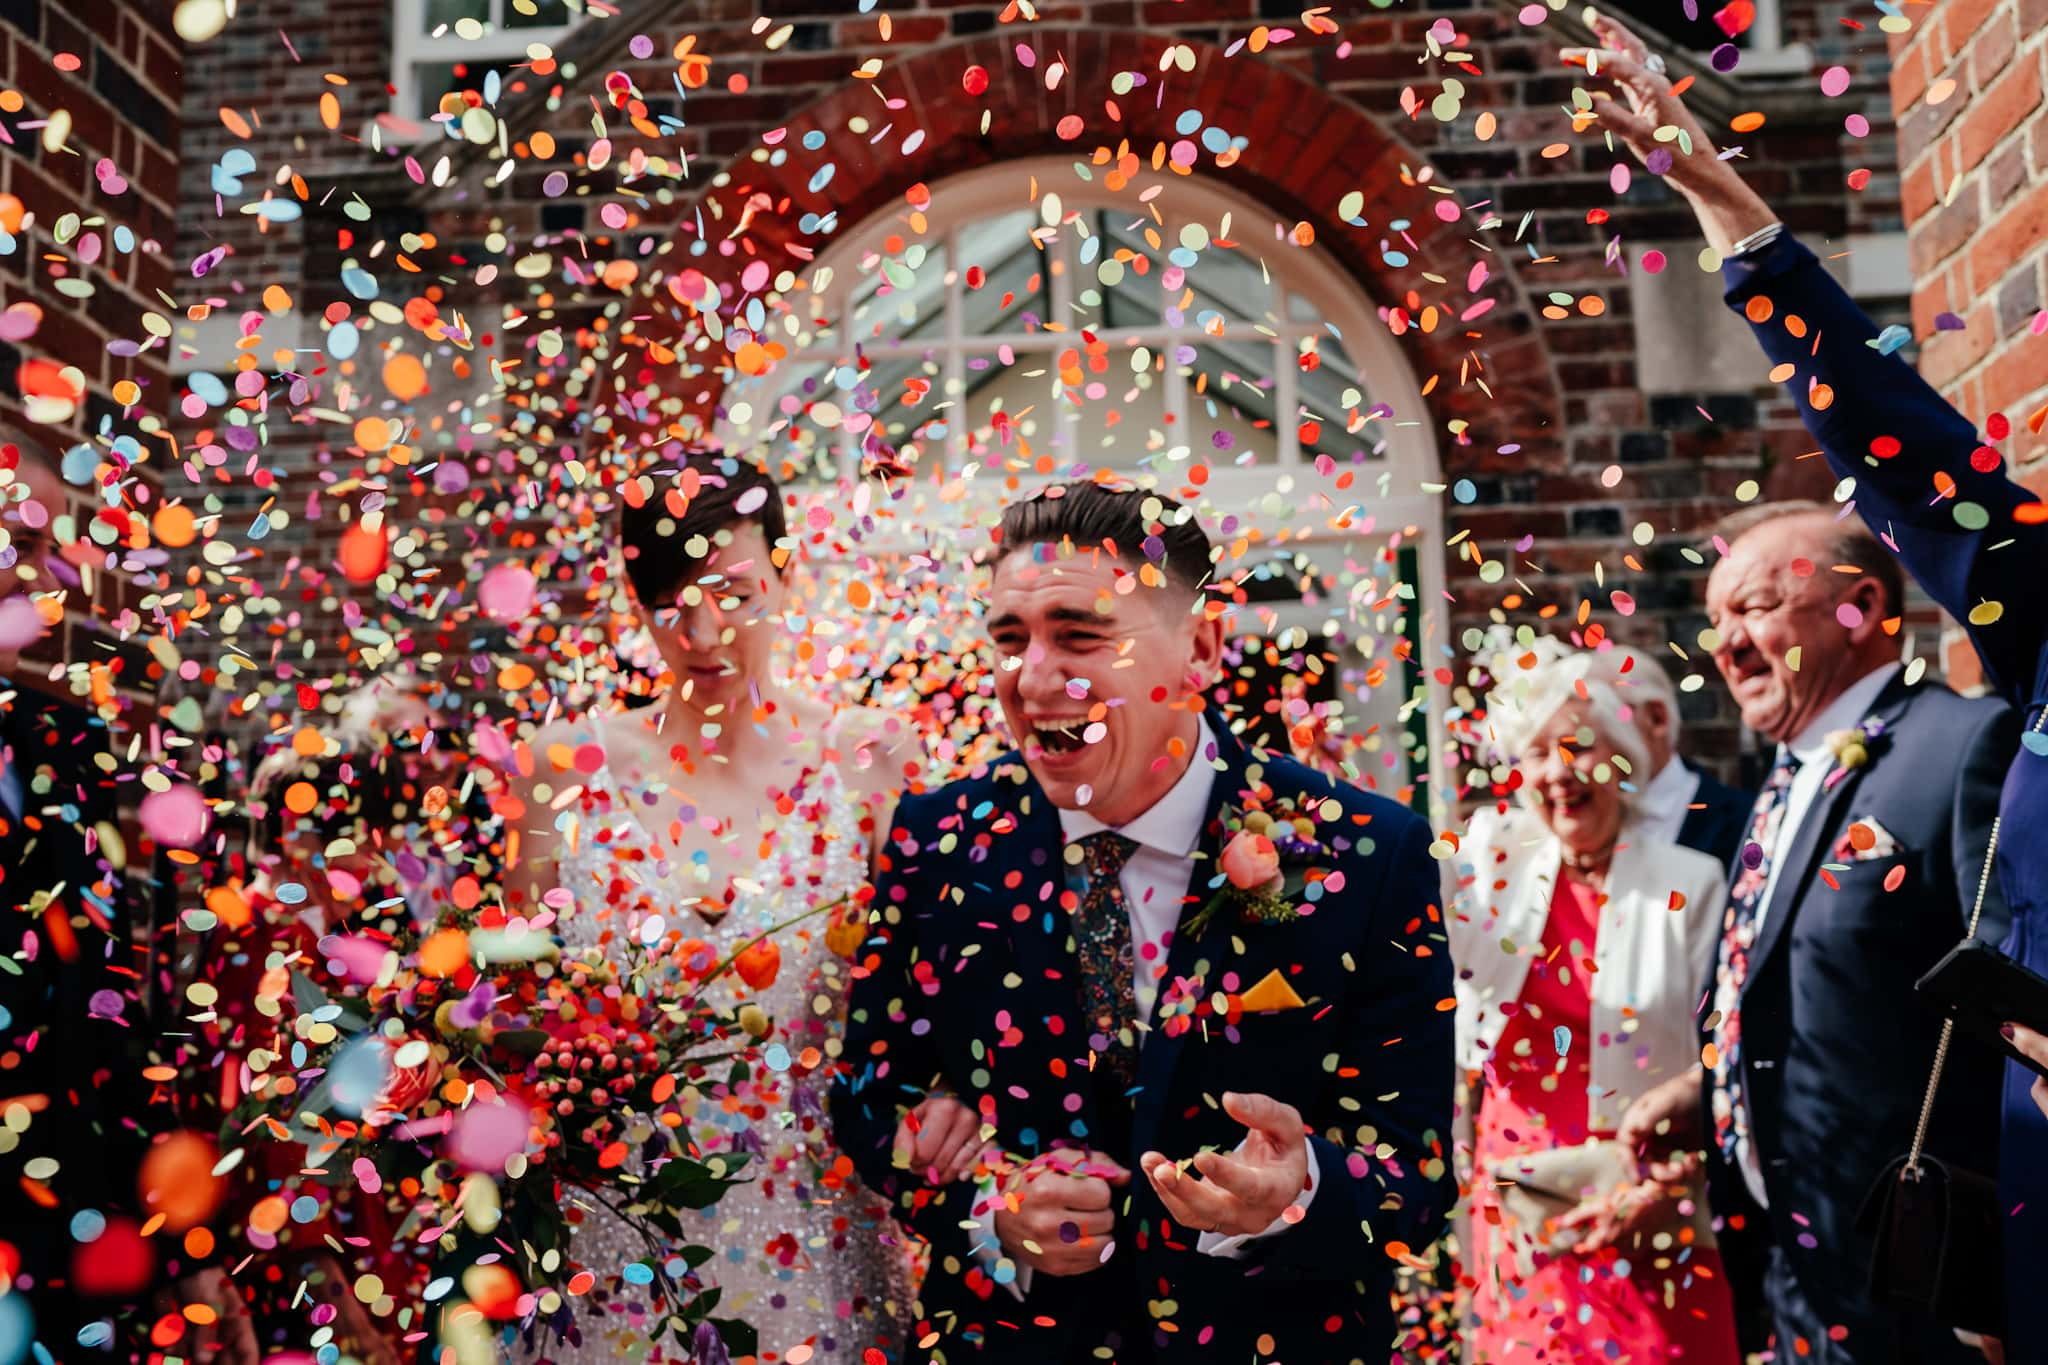 wedding confetti storm